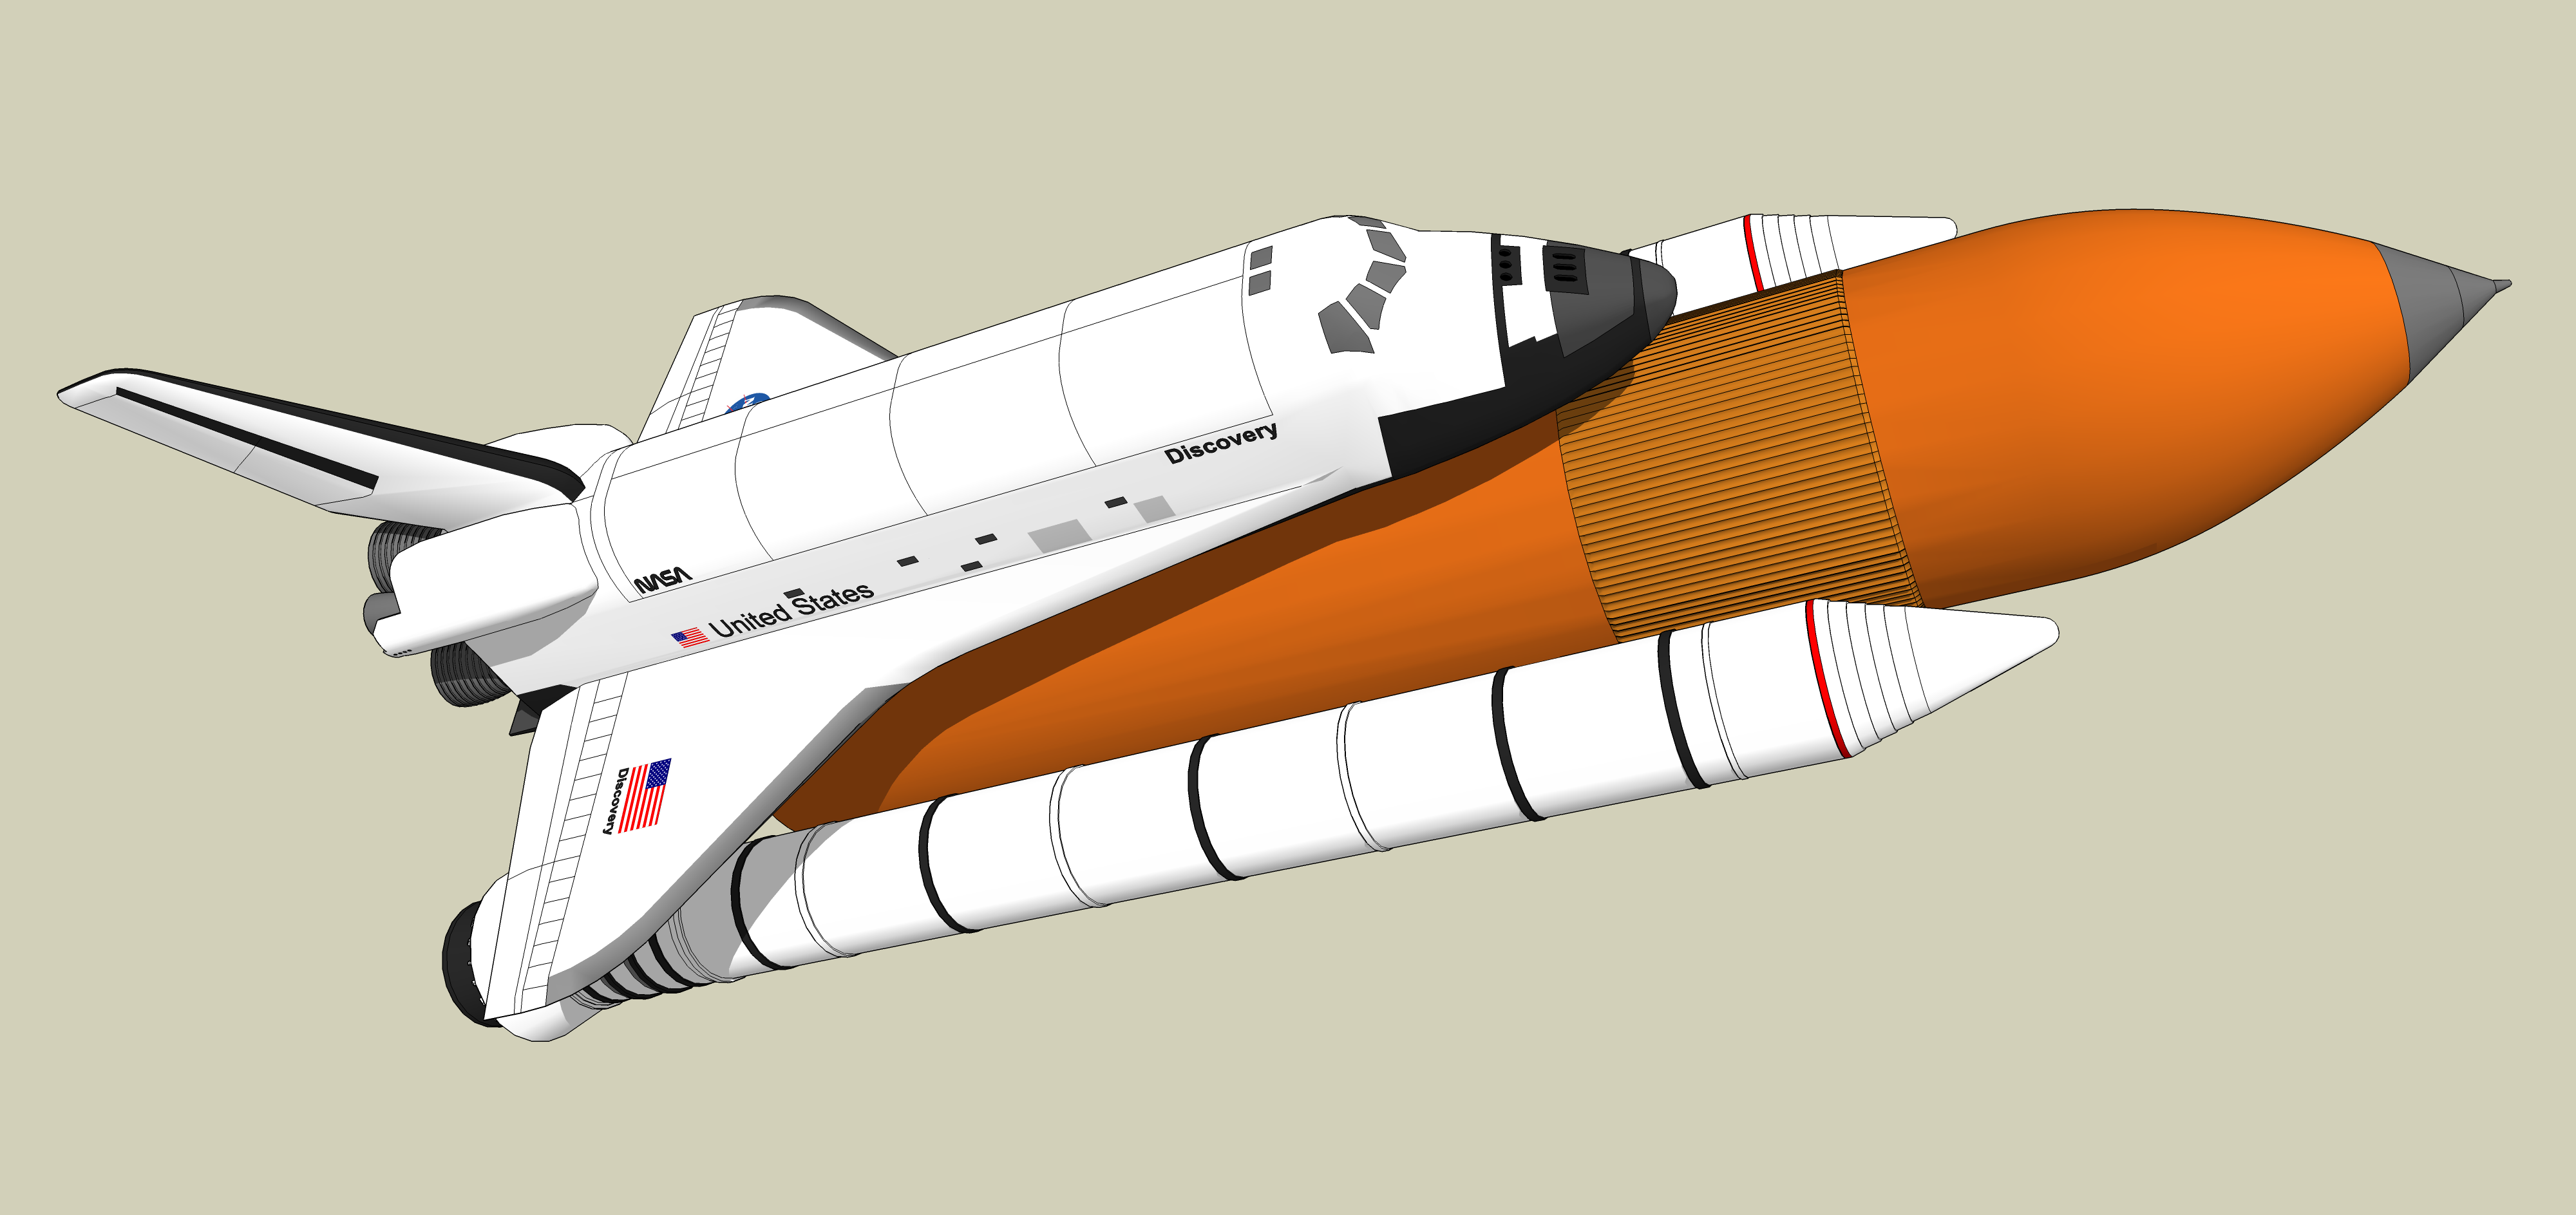 Animated space shuttle